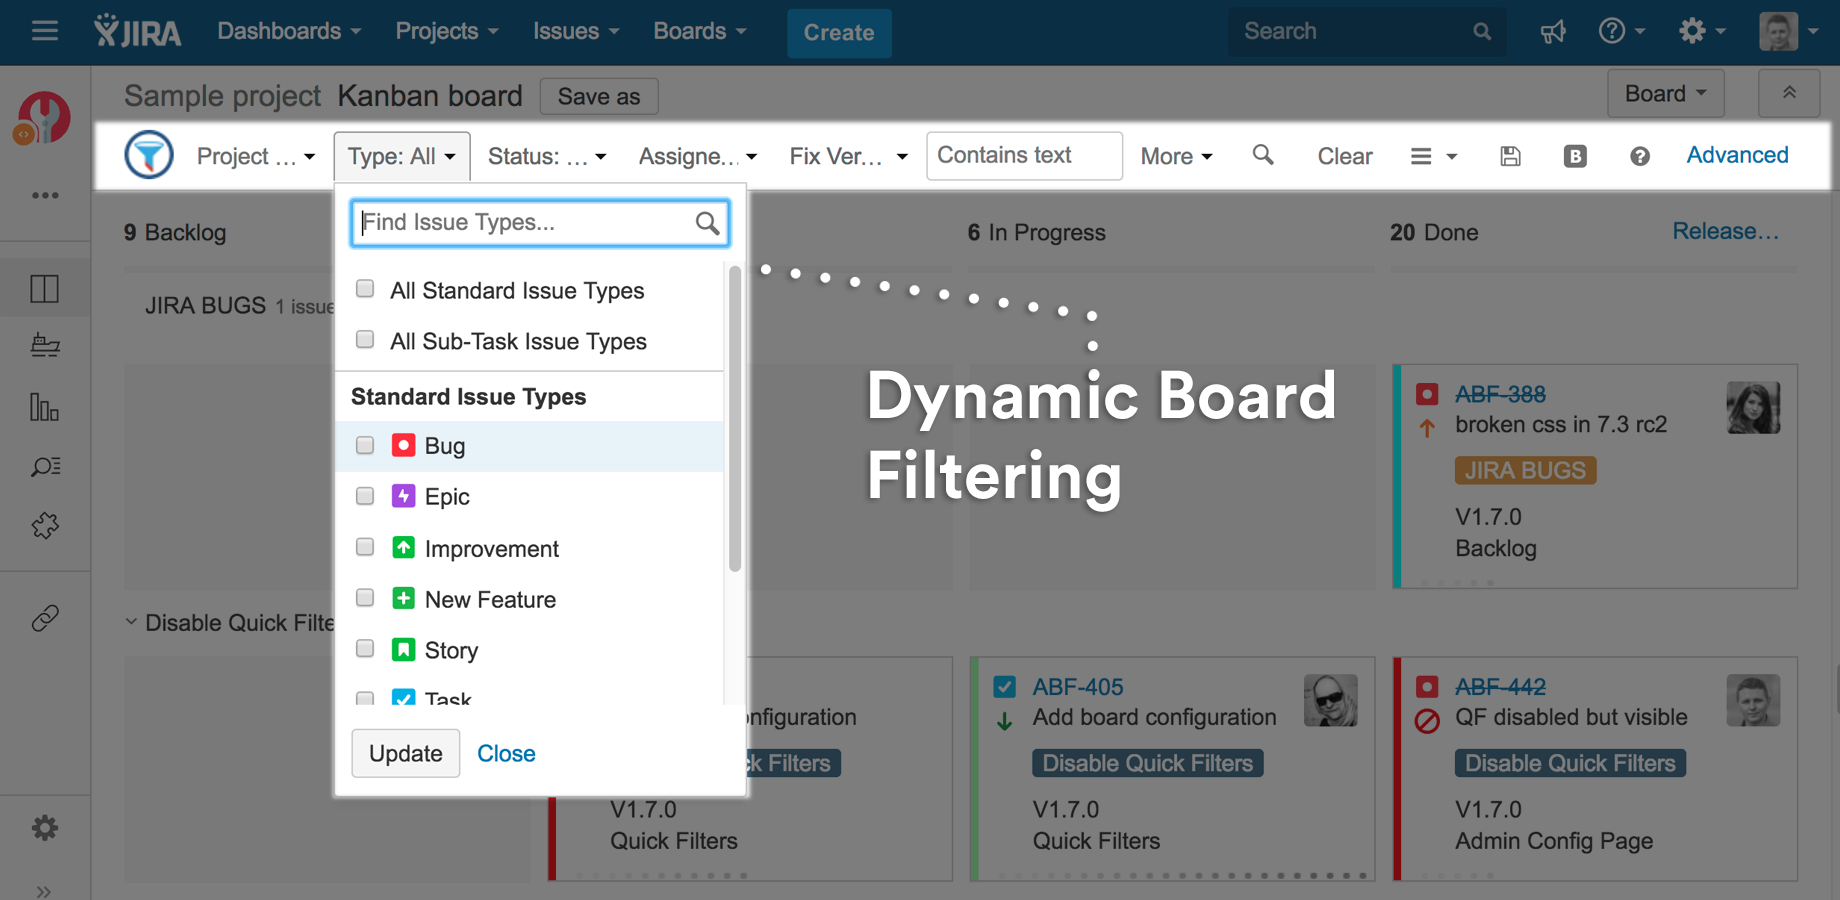 How can I filter my JIRA Agile board by assignee?